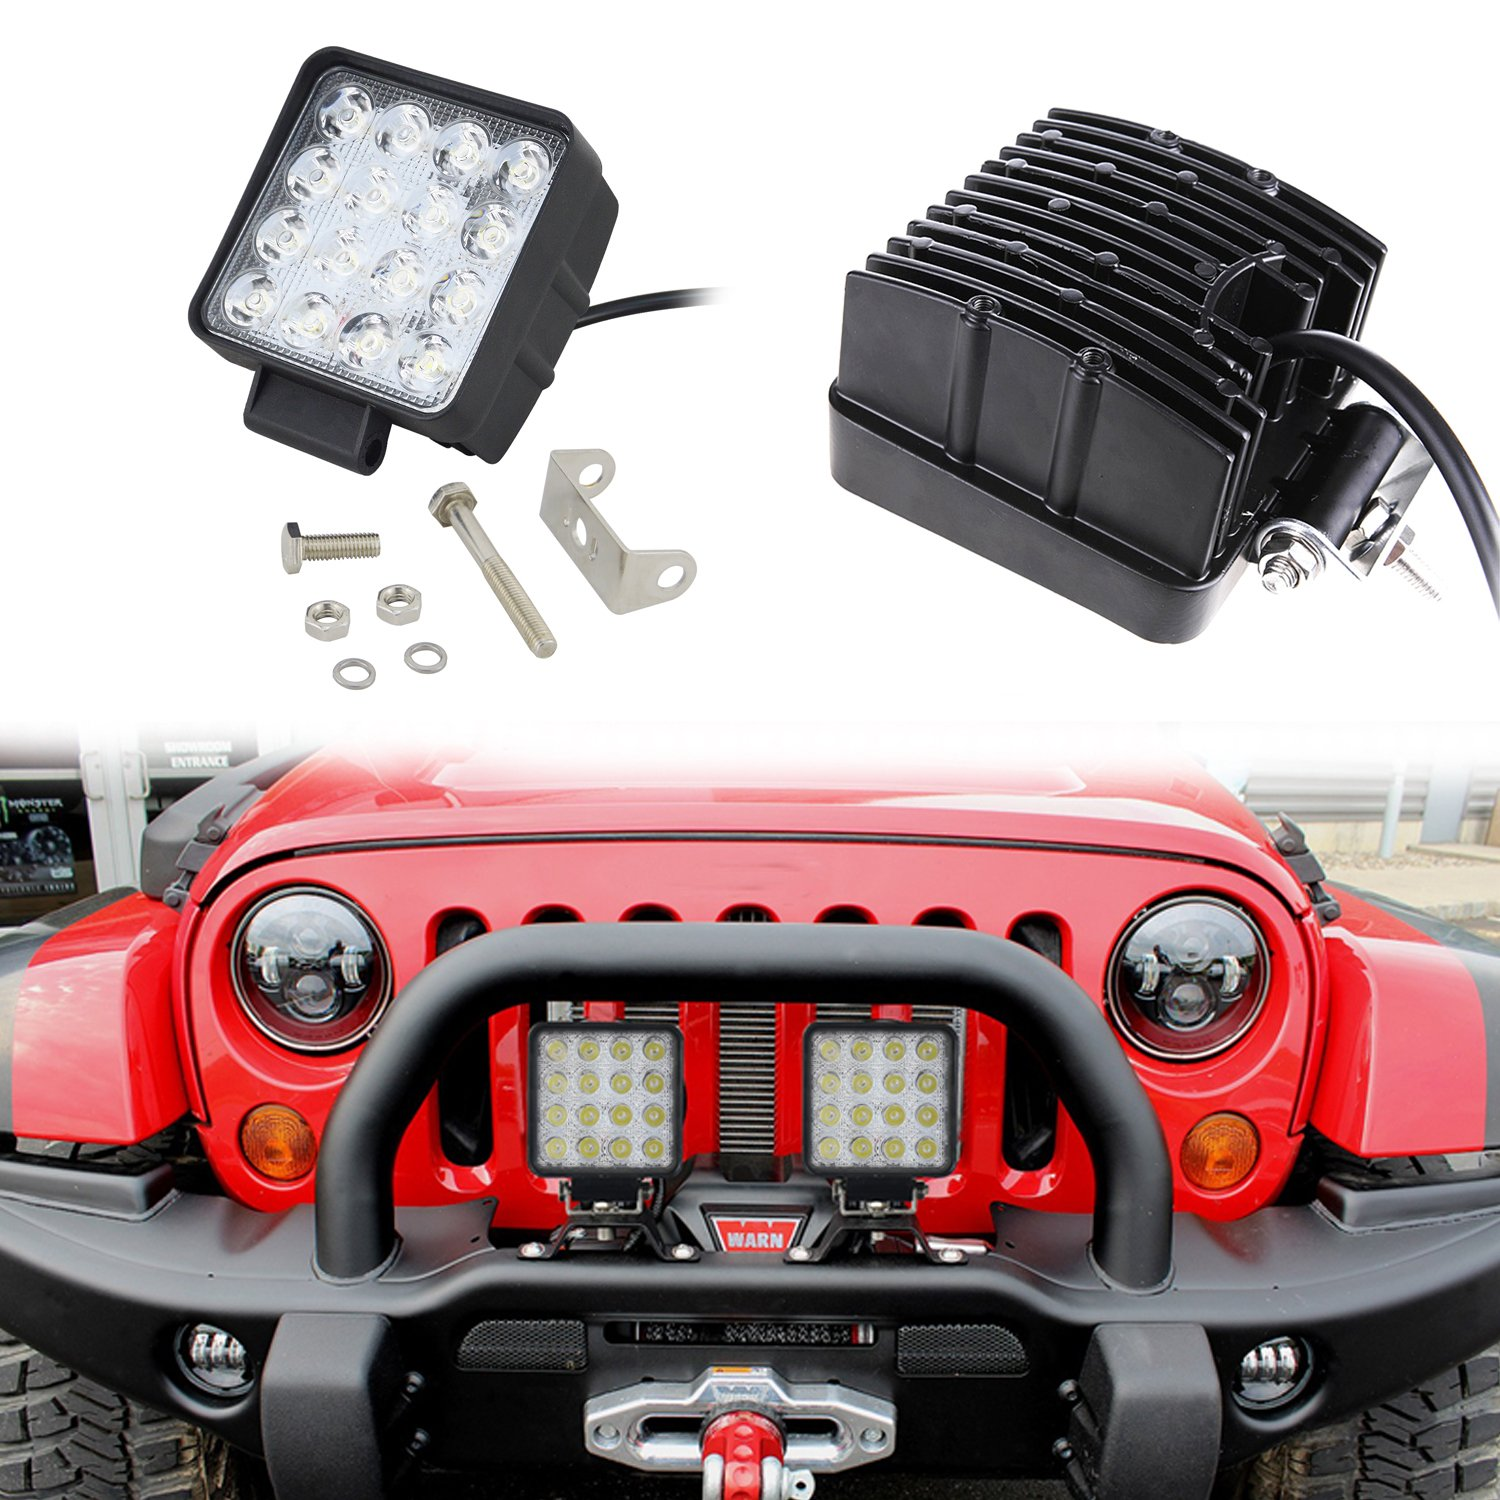 Dr.OX 5 Inch 10PCS Flood LED Work Light Bar 10D for Off Road Van Jeep SUV Truck Car ATV 4WD 4x4 RV UTE Tractor Vehicle Boat Driving Fog Lamp 96W